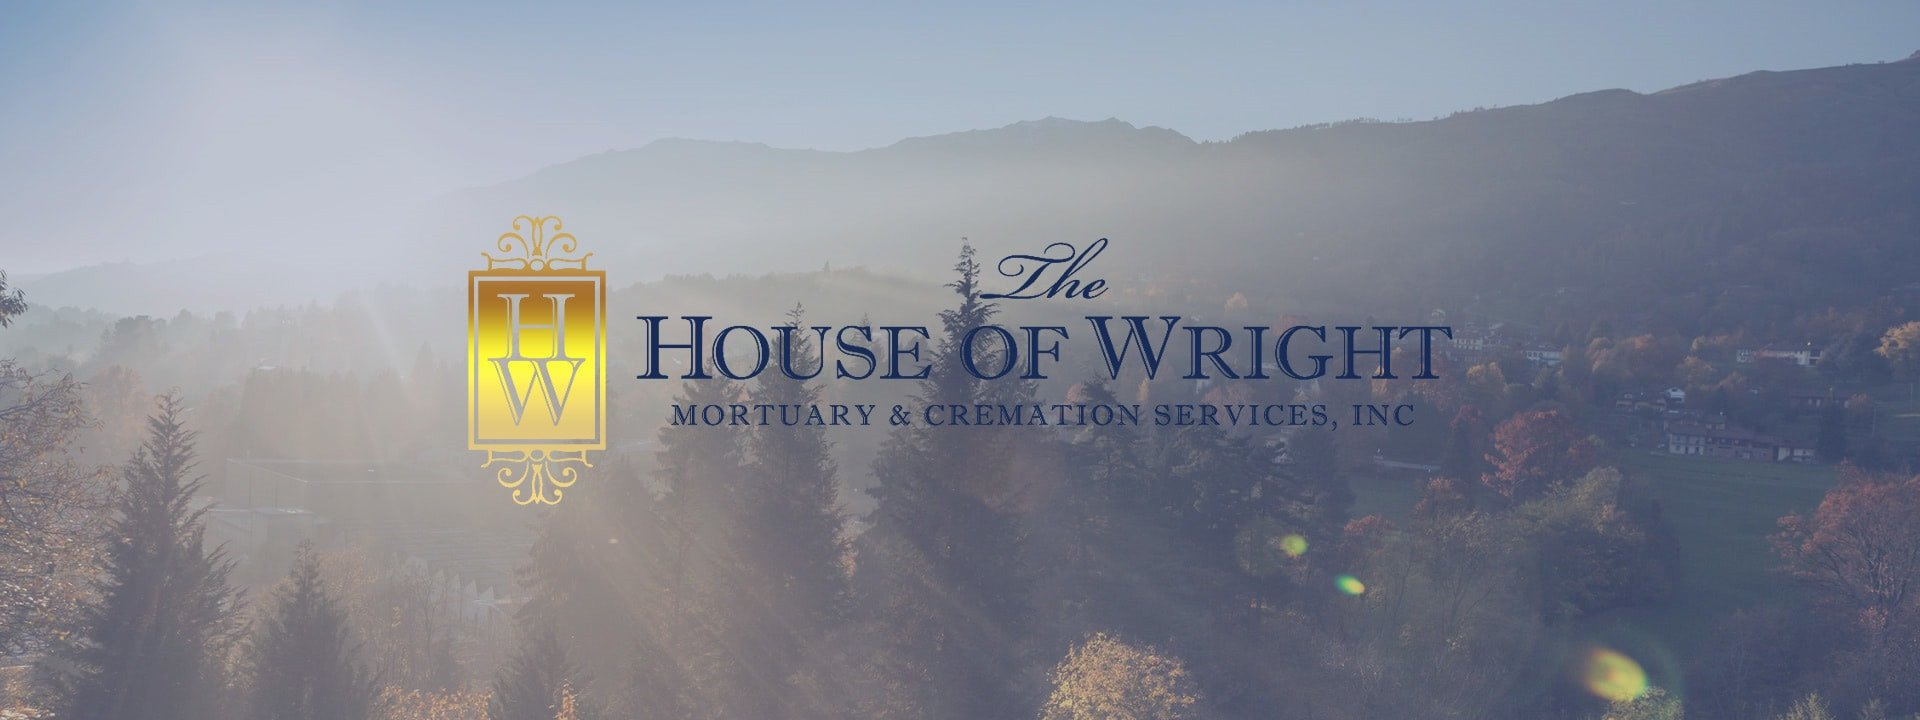 About Us | House Of Wright Mortuary